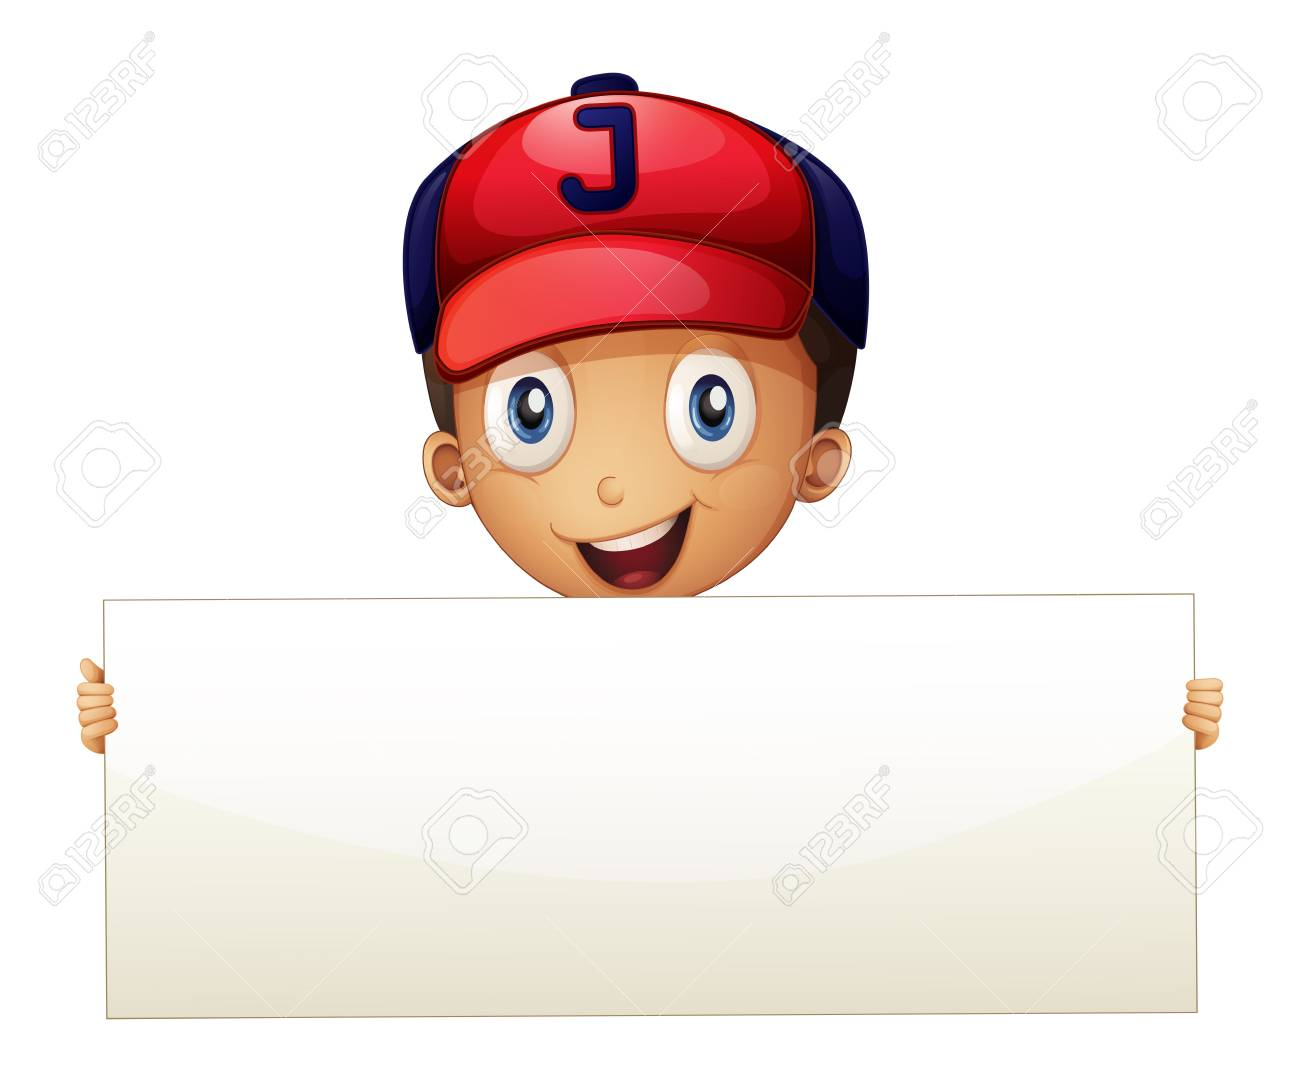 Illustration of a happy young boy holding an empty signboard on a white background Stock Vector - 20888847